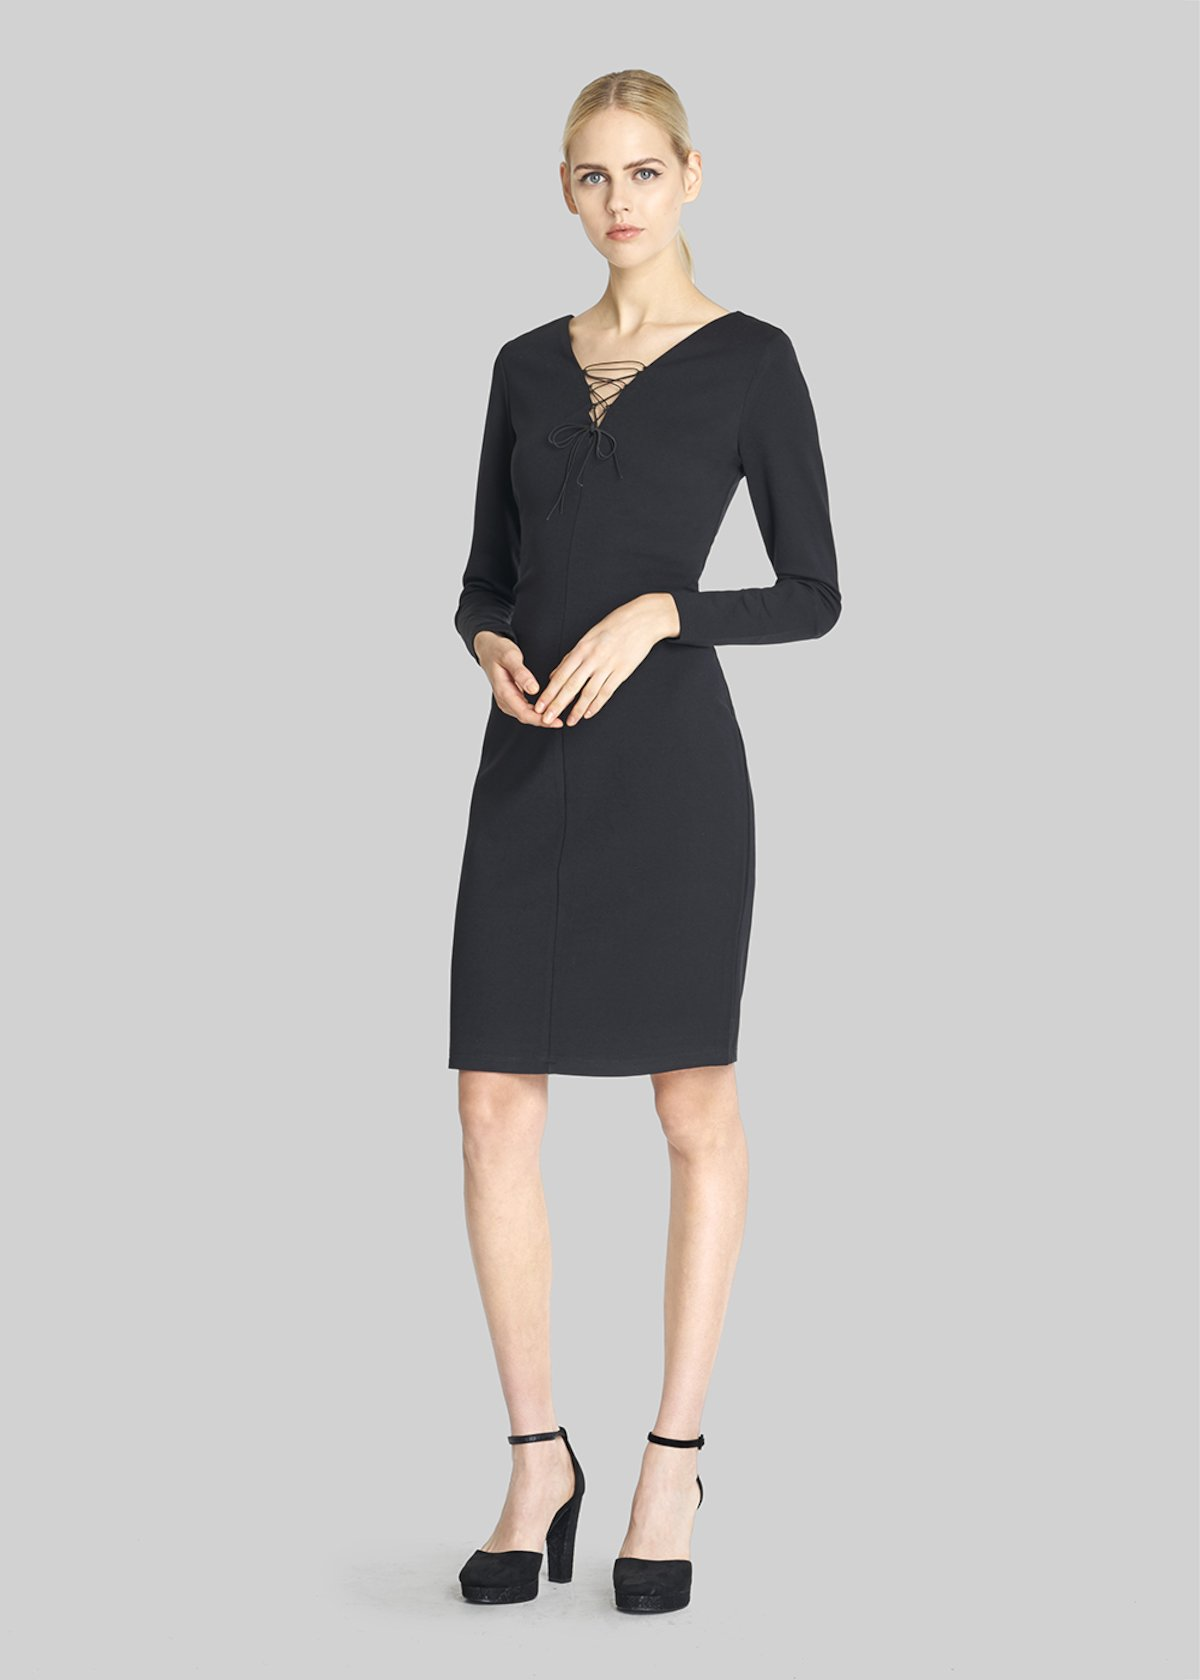 Alyson dress with criss-cross neckline detail - Black